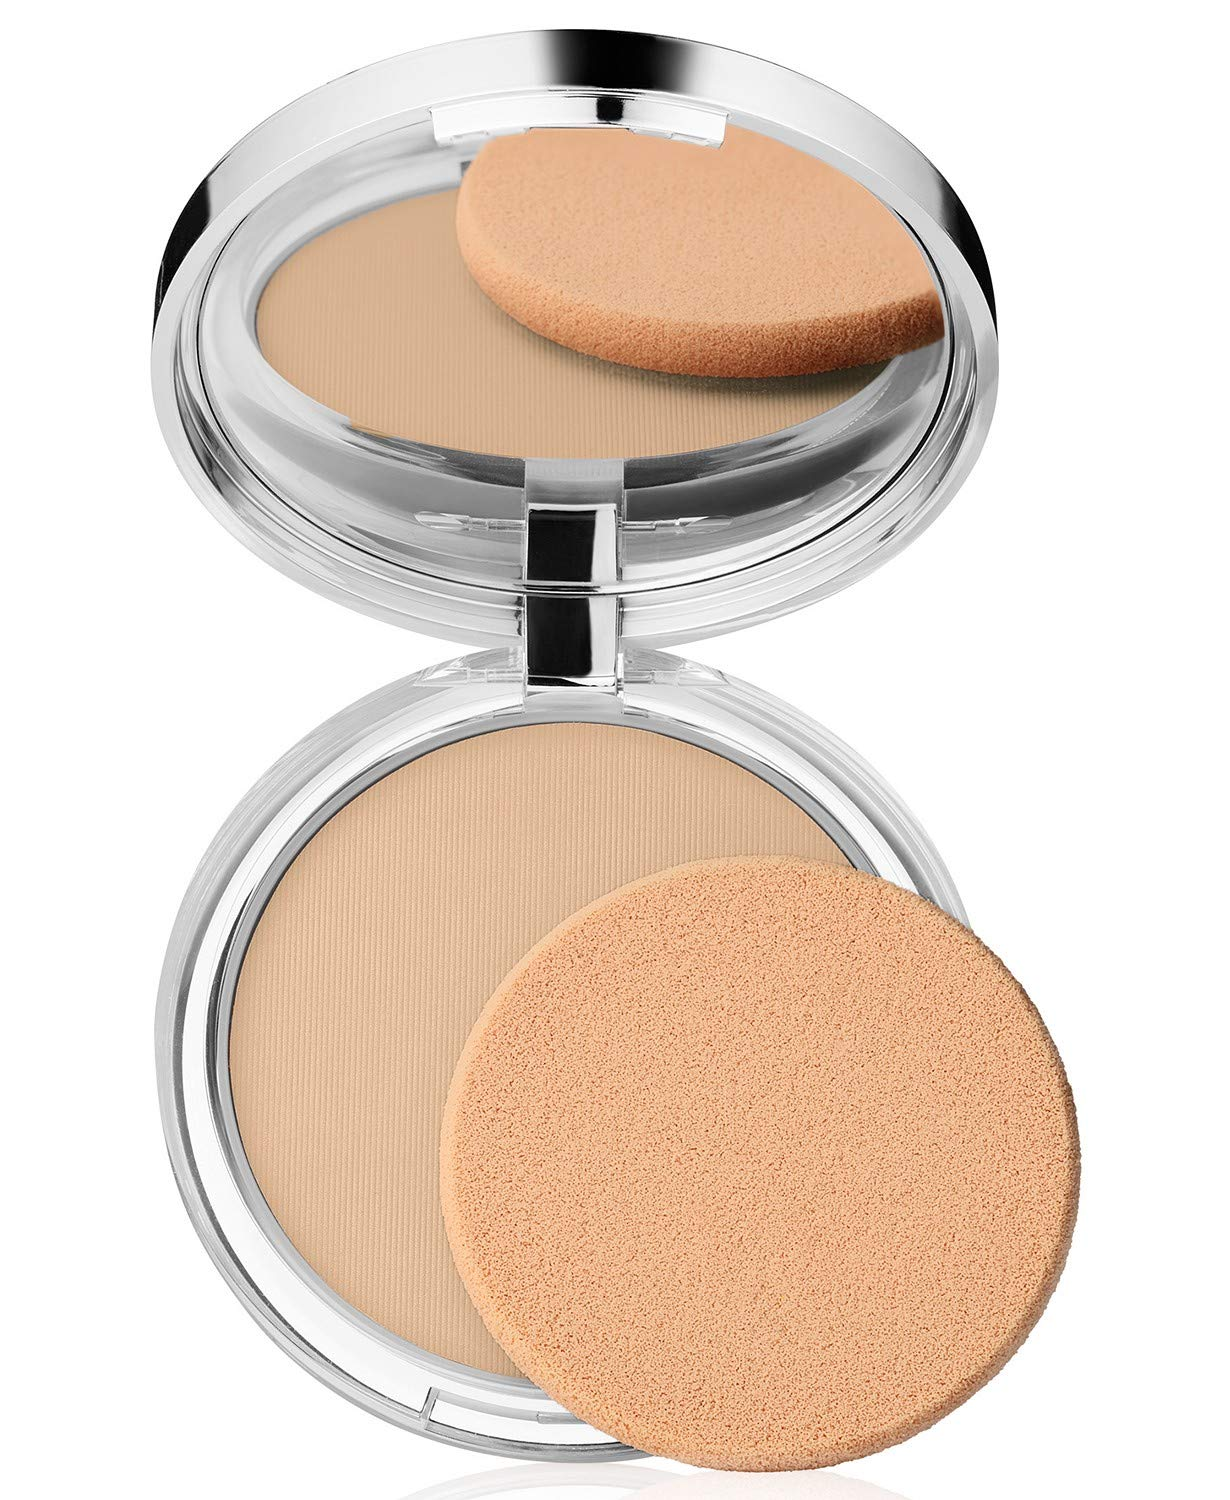 New! Clinique Superpowder Double Face Makeup, 0.35 oz/ 10.5 g, 10 Matte Medium (M-G)